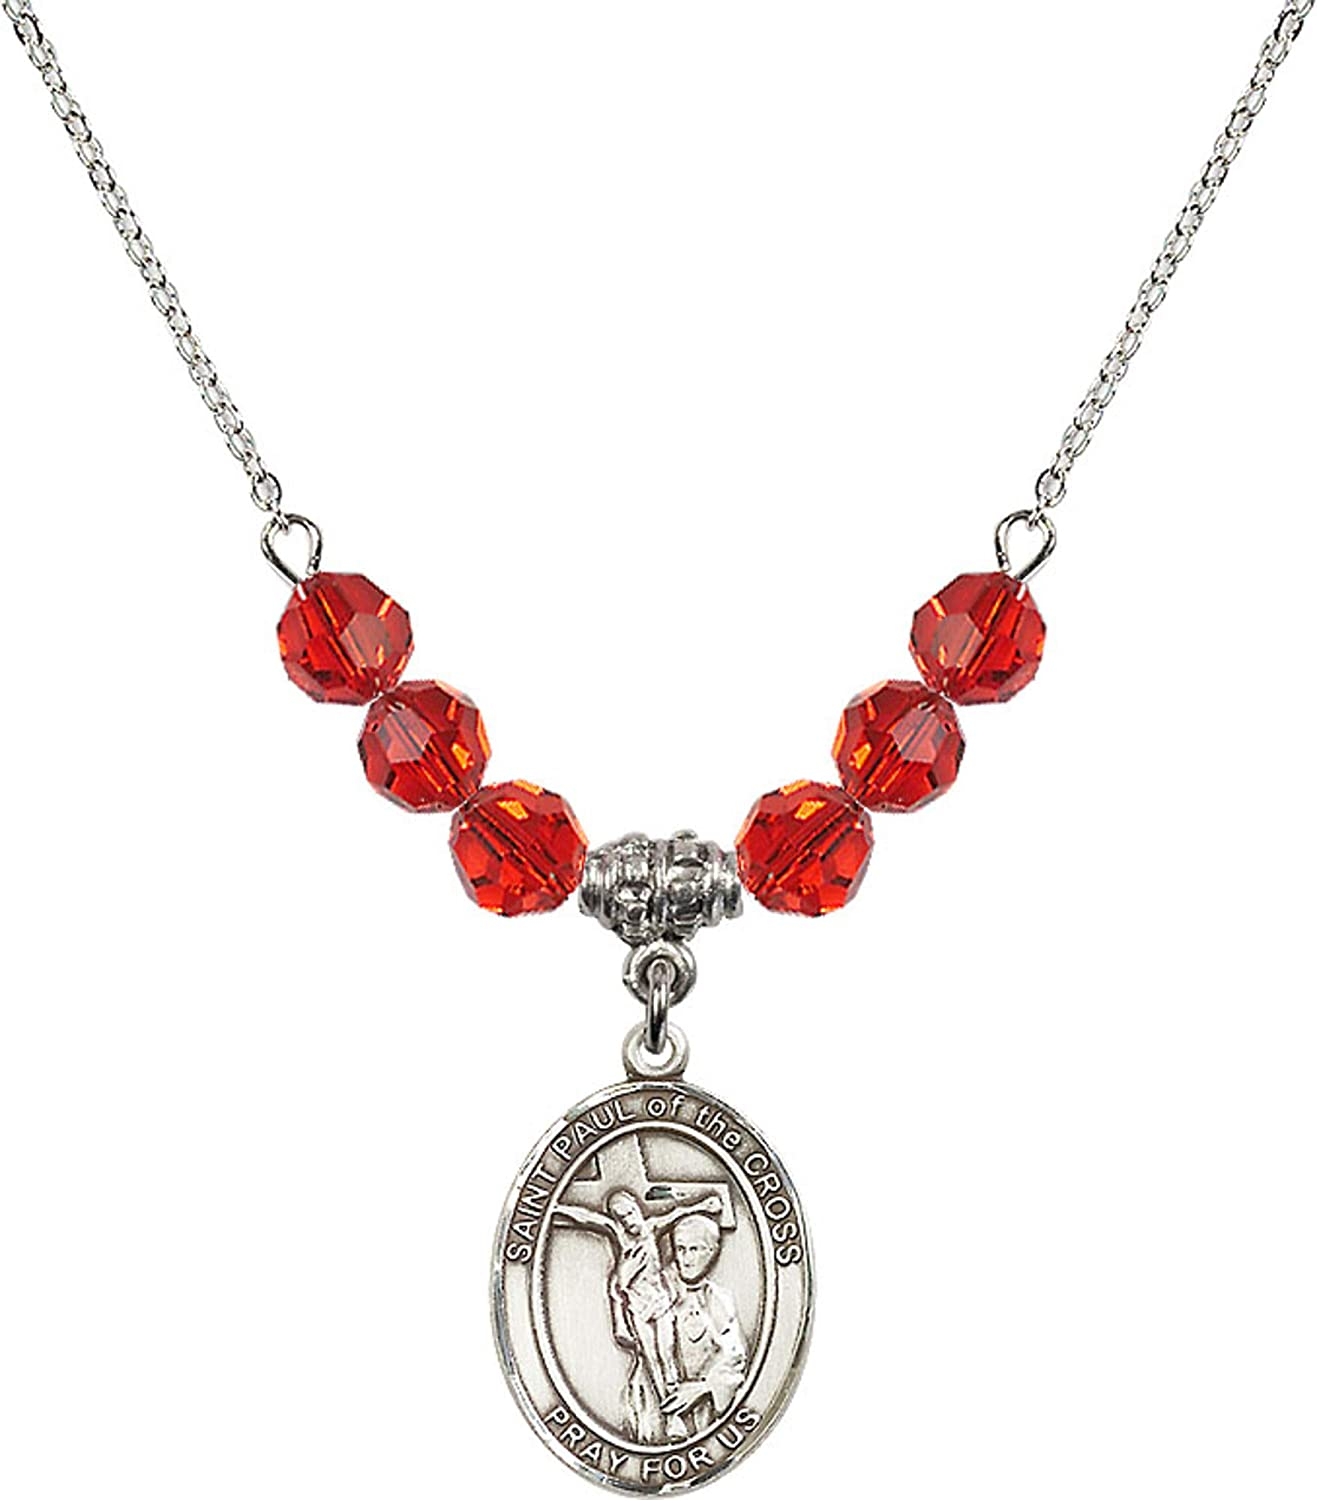 Bonyak Jewelry 18 Inch Rhodium Plated Necklace w// 6mm Red July Birth Month Stone Beads and Saint Paul of The Cross Charm